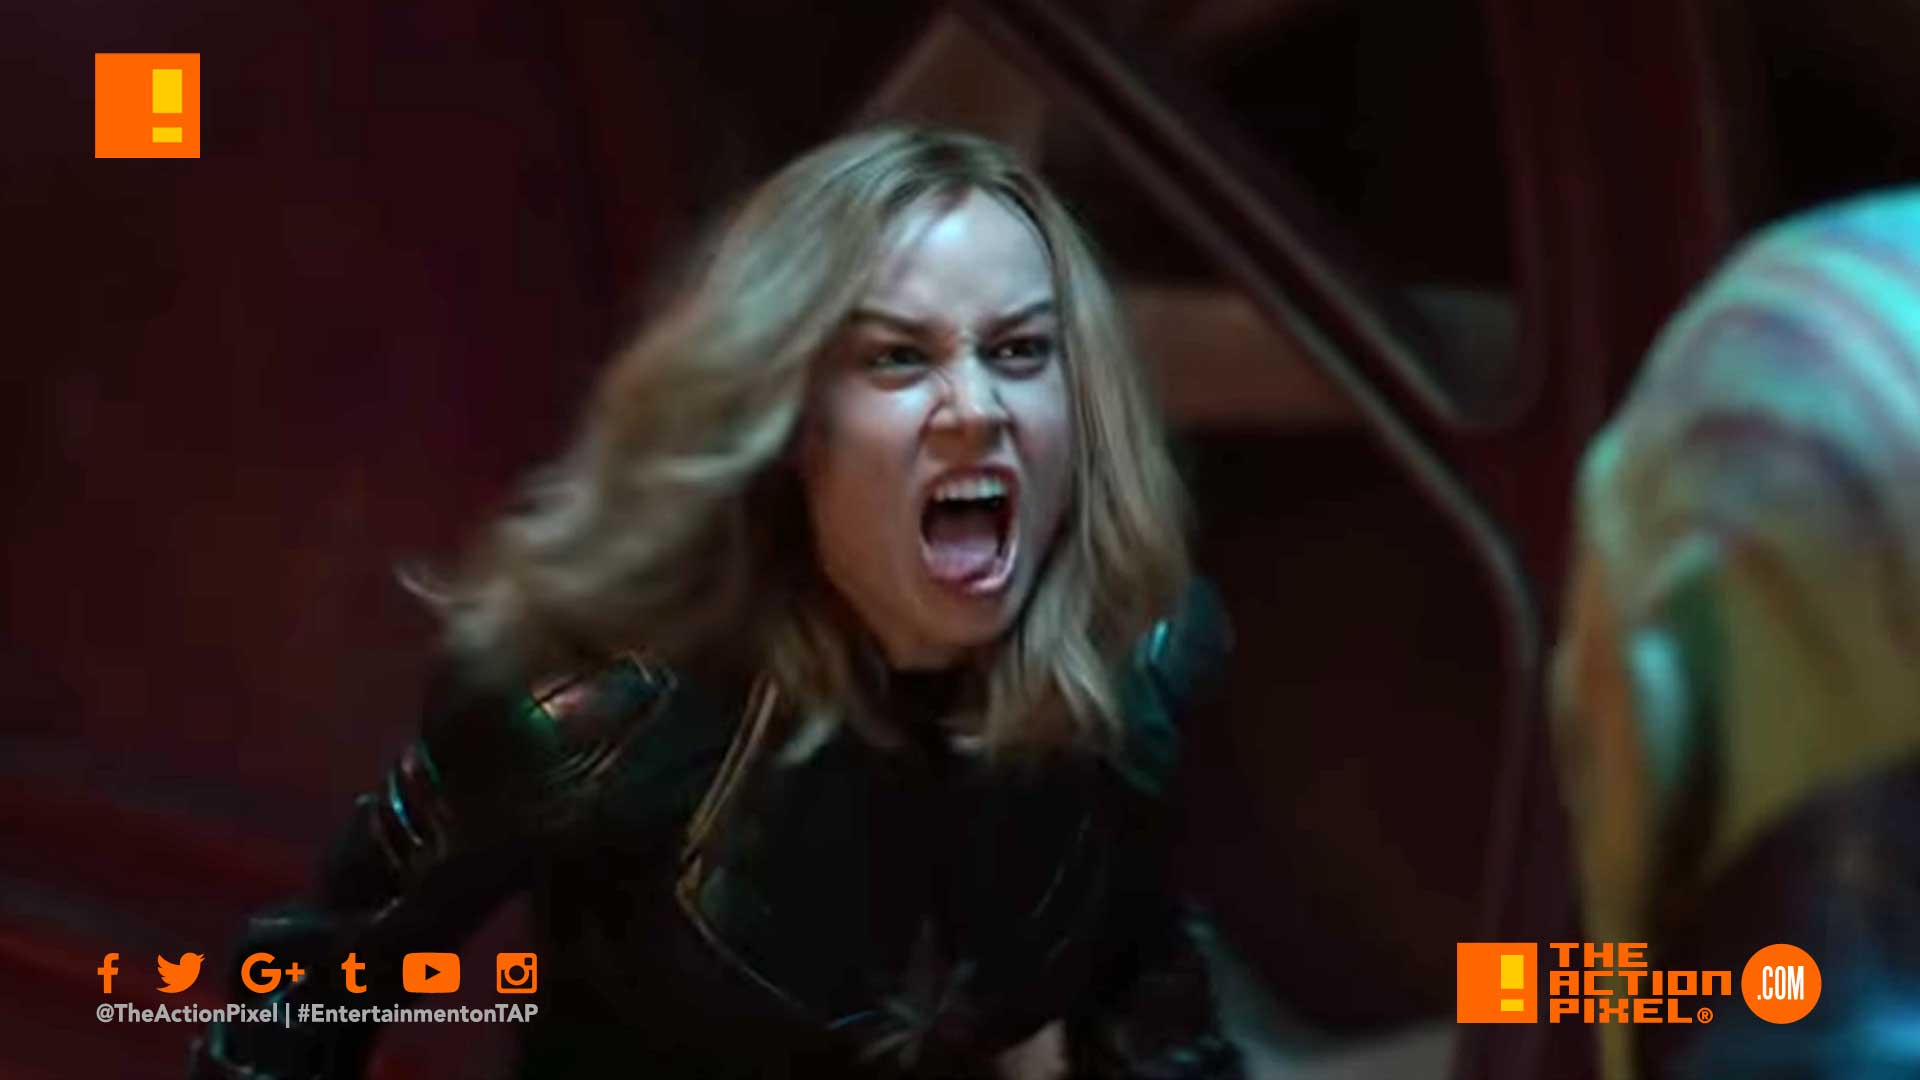 captain marvel, marvel, trailer 2, captain marvel, brie larson, marvel,marvel comics,marvel entertainment, the action pixel,entertainment on tap, annette Bening, actor, captain marvel, brie larson, marvel,marvel comics,marvel entertainment, the action pixel,entertainment on tap, first look, entertainment weekly, skrull, mar-vell, jude law, nick fury, poster, new trailer, espn,captain marvel special look, big game